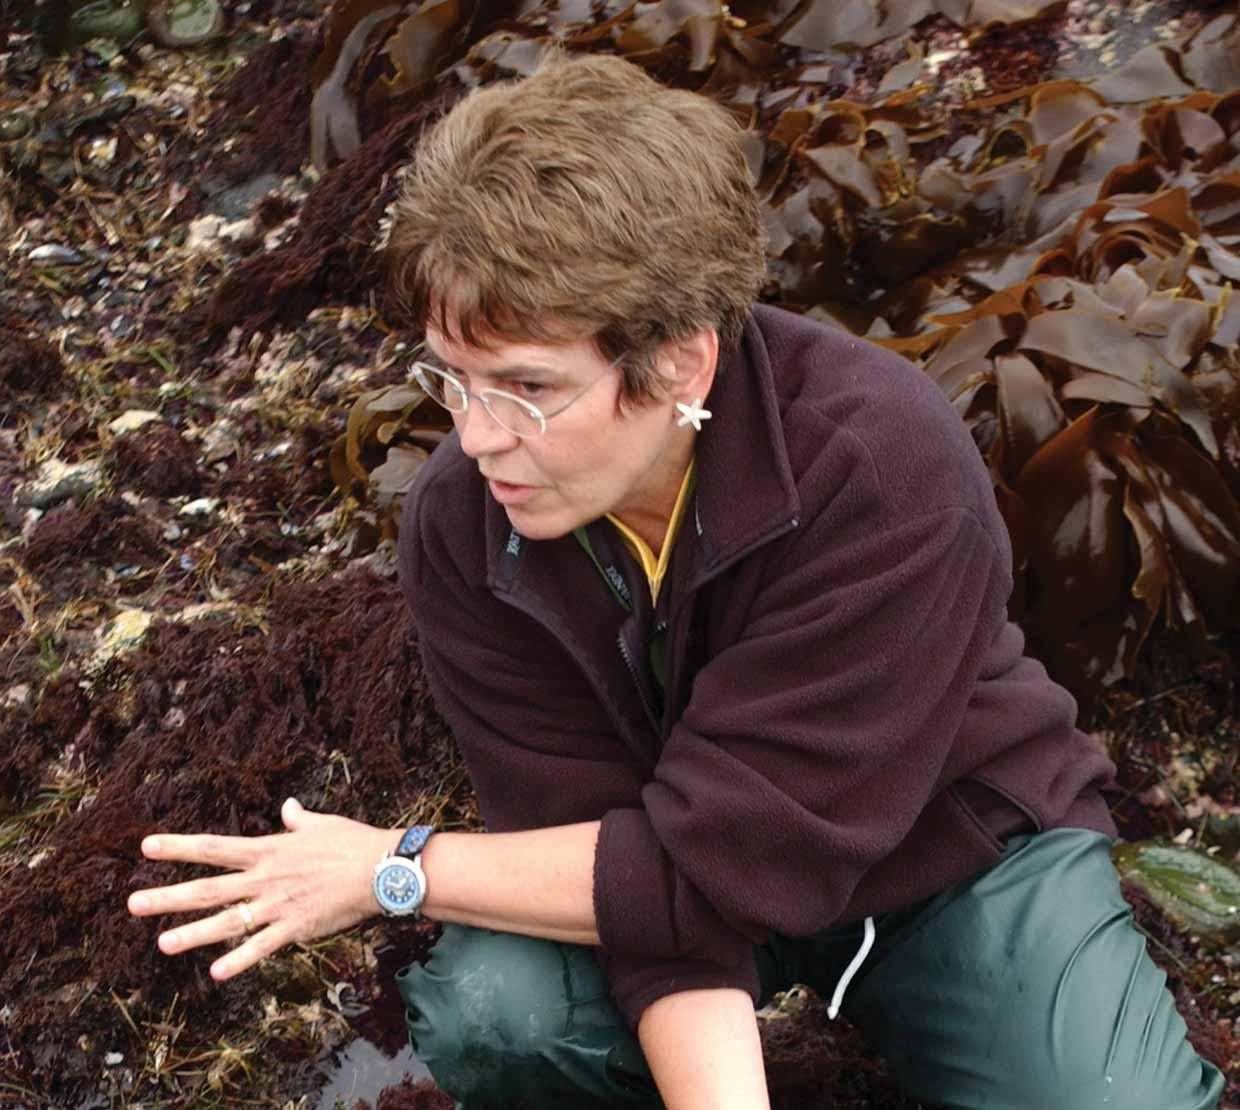 Jane Lubchenco sitting in seaweed and urchins